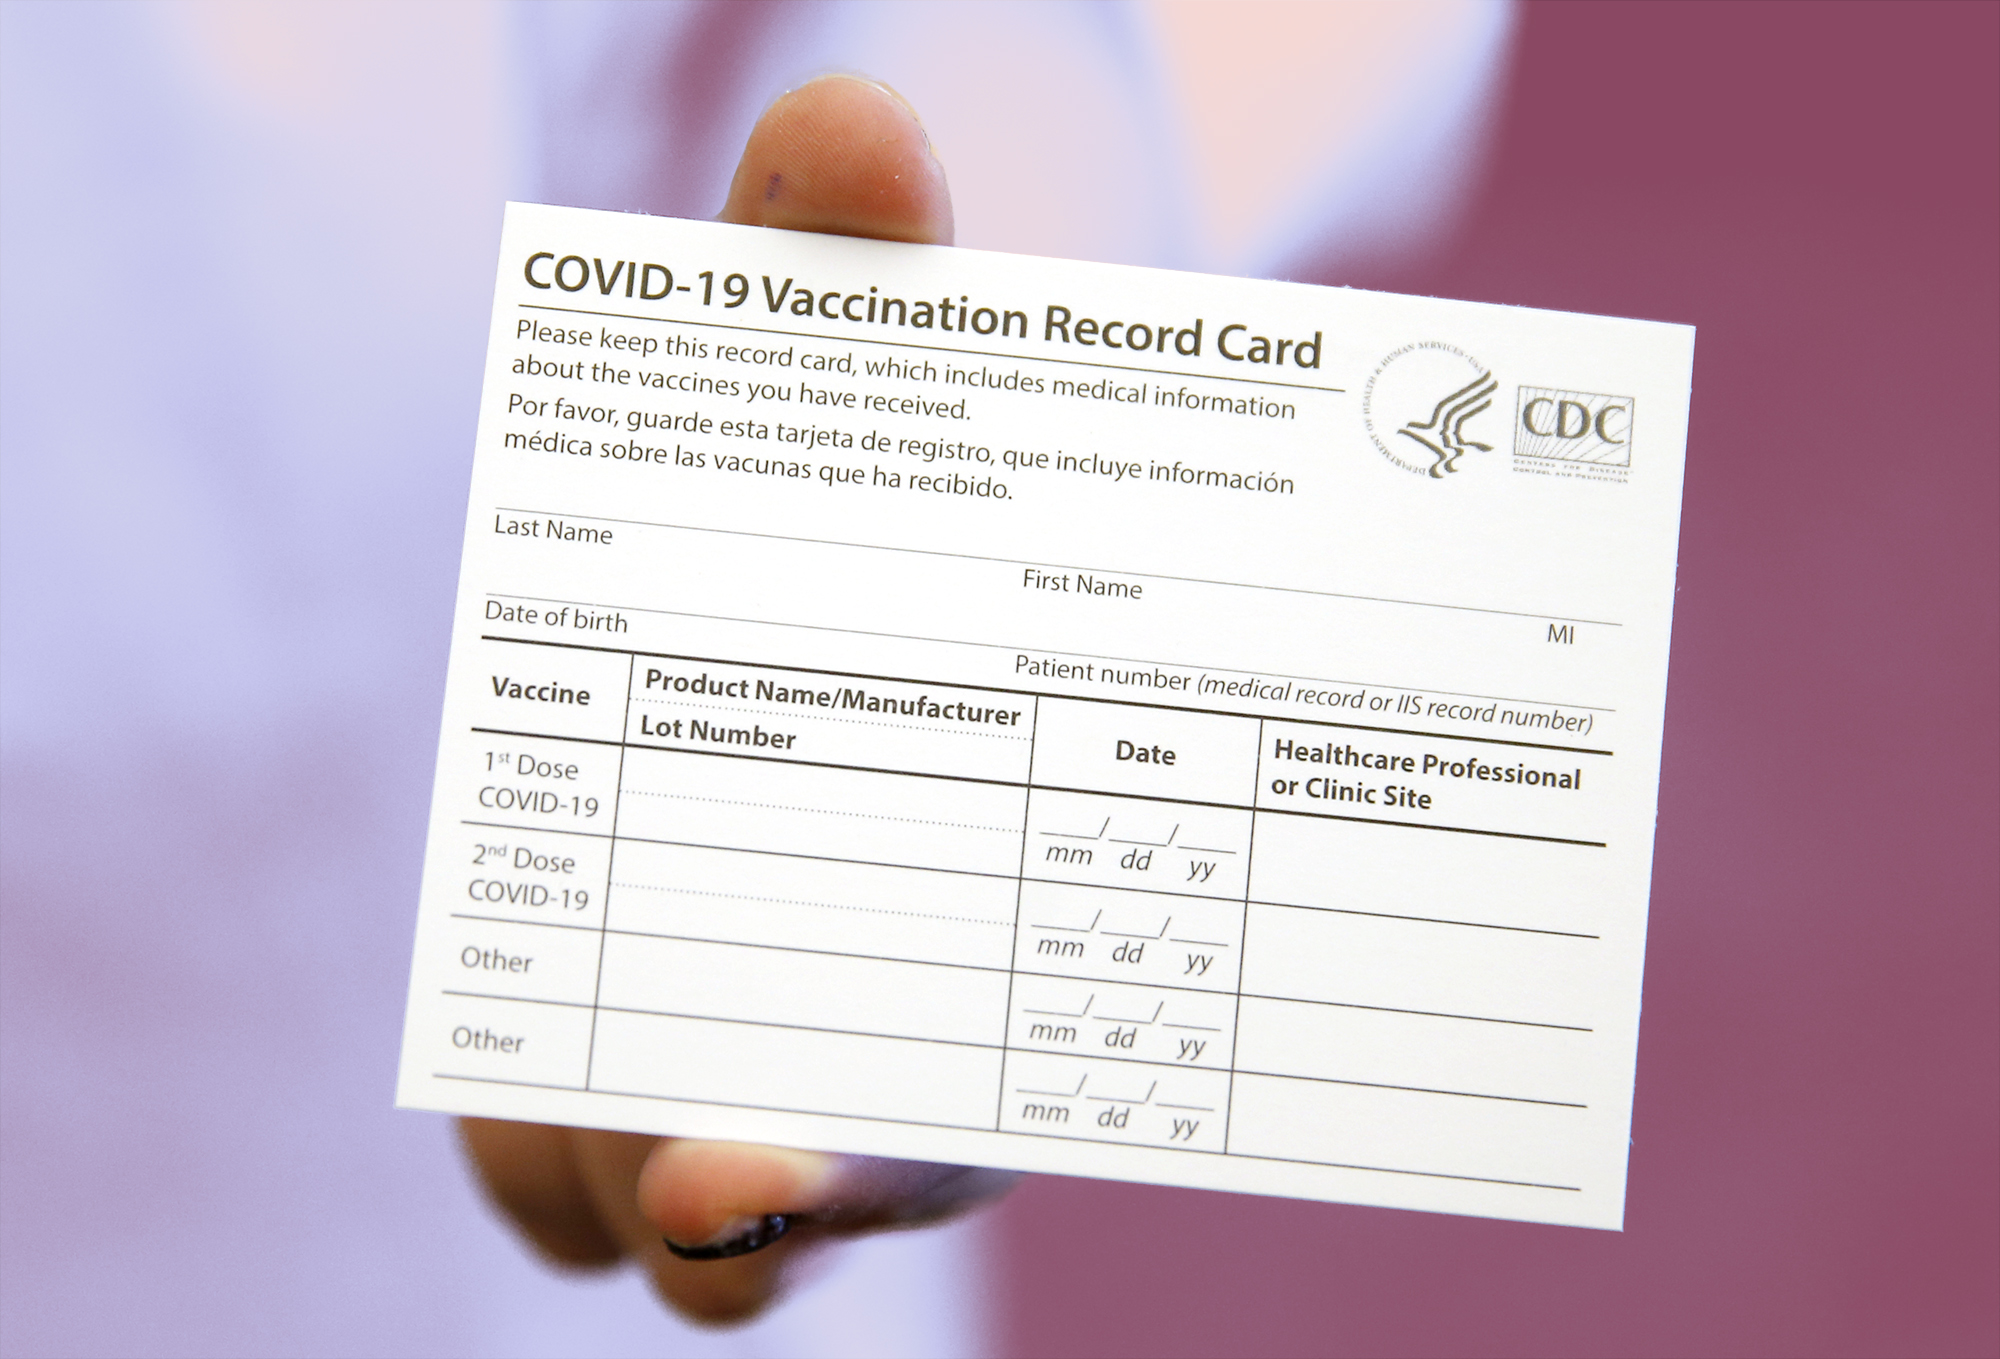 Your COVID-19 Vaccine Card, What to Do if You Lose It, Why You Shouldn't Laminate It, and Other Important Info , BOSTON - DECEMBER 16: Elizabeth Hafted, Pharmacist displays a COVID-19 Vaccination Record Card at Beth Israel Deaconess Medical Center in Boston on Dec. 16, 2020. (Photo by Jessica Rinaldi/The Boston Globe via Getty Images)